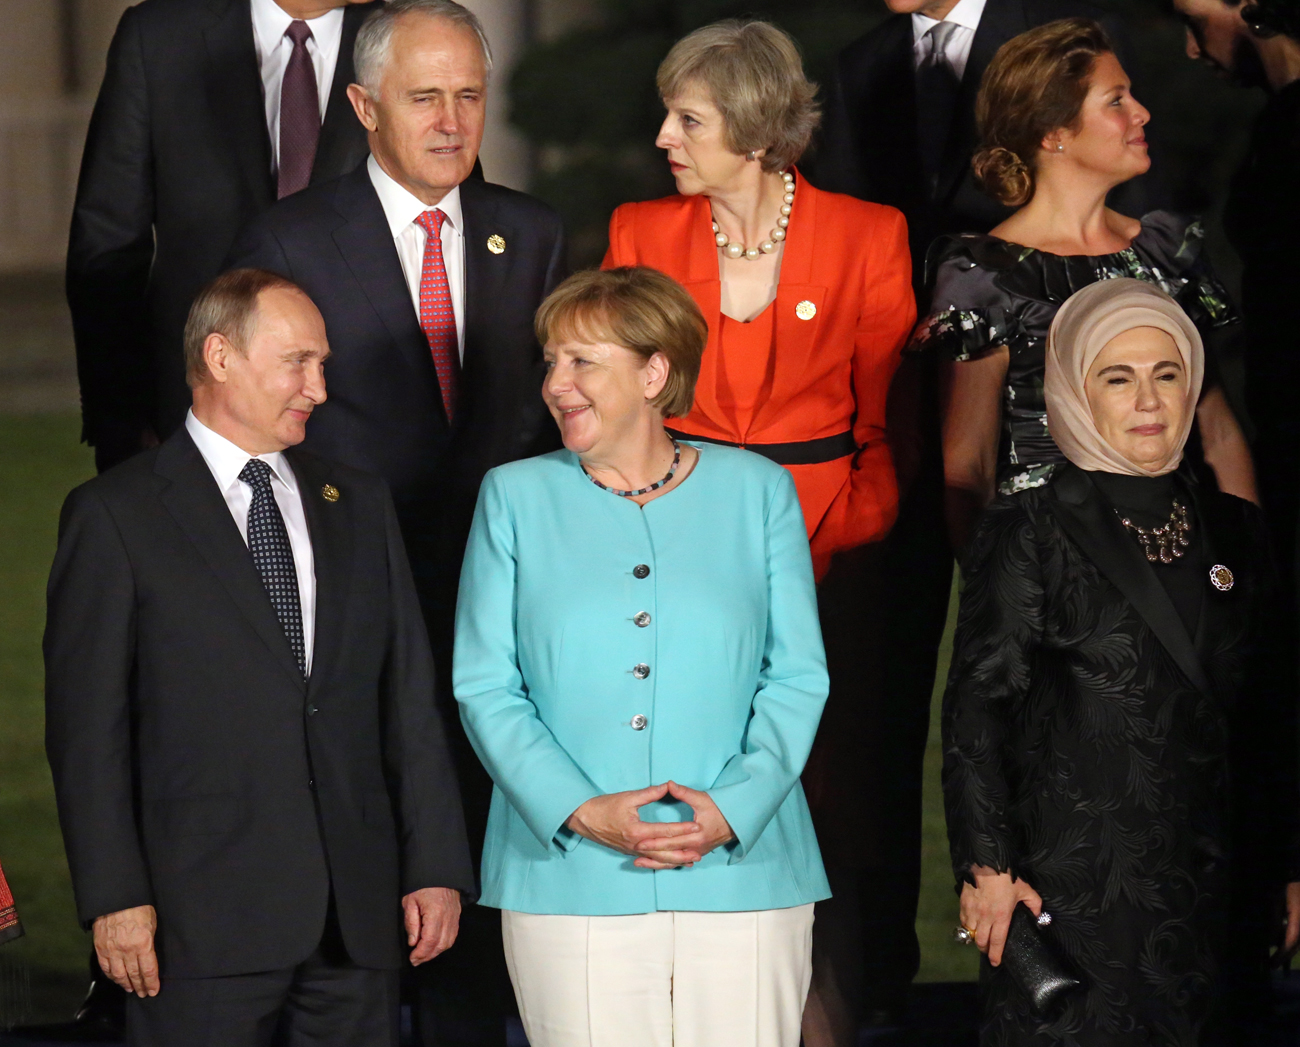 Russian President Vladimir Putin, left, speaks with German Chancellor Angela Merkel, center, while British Prime Minister Theresa May talks, center second row, during a group photo session for the G-20 Summit at Xizi Hotel in Hangzhou in eastern China's Zhejiang province / AP